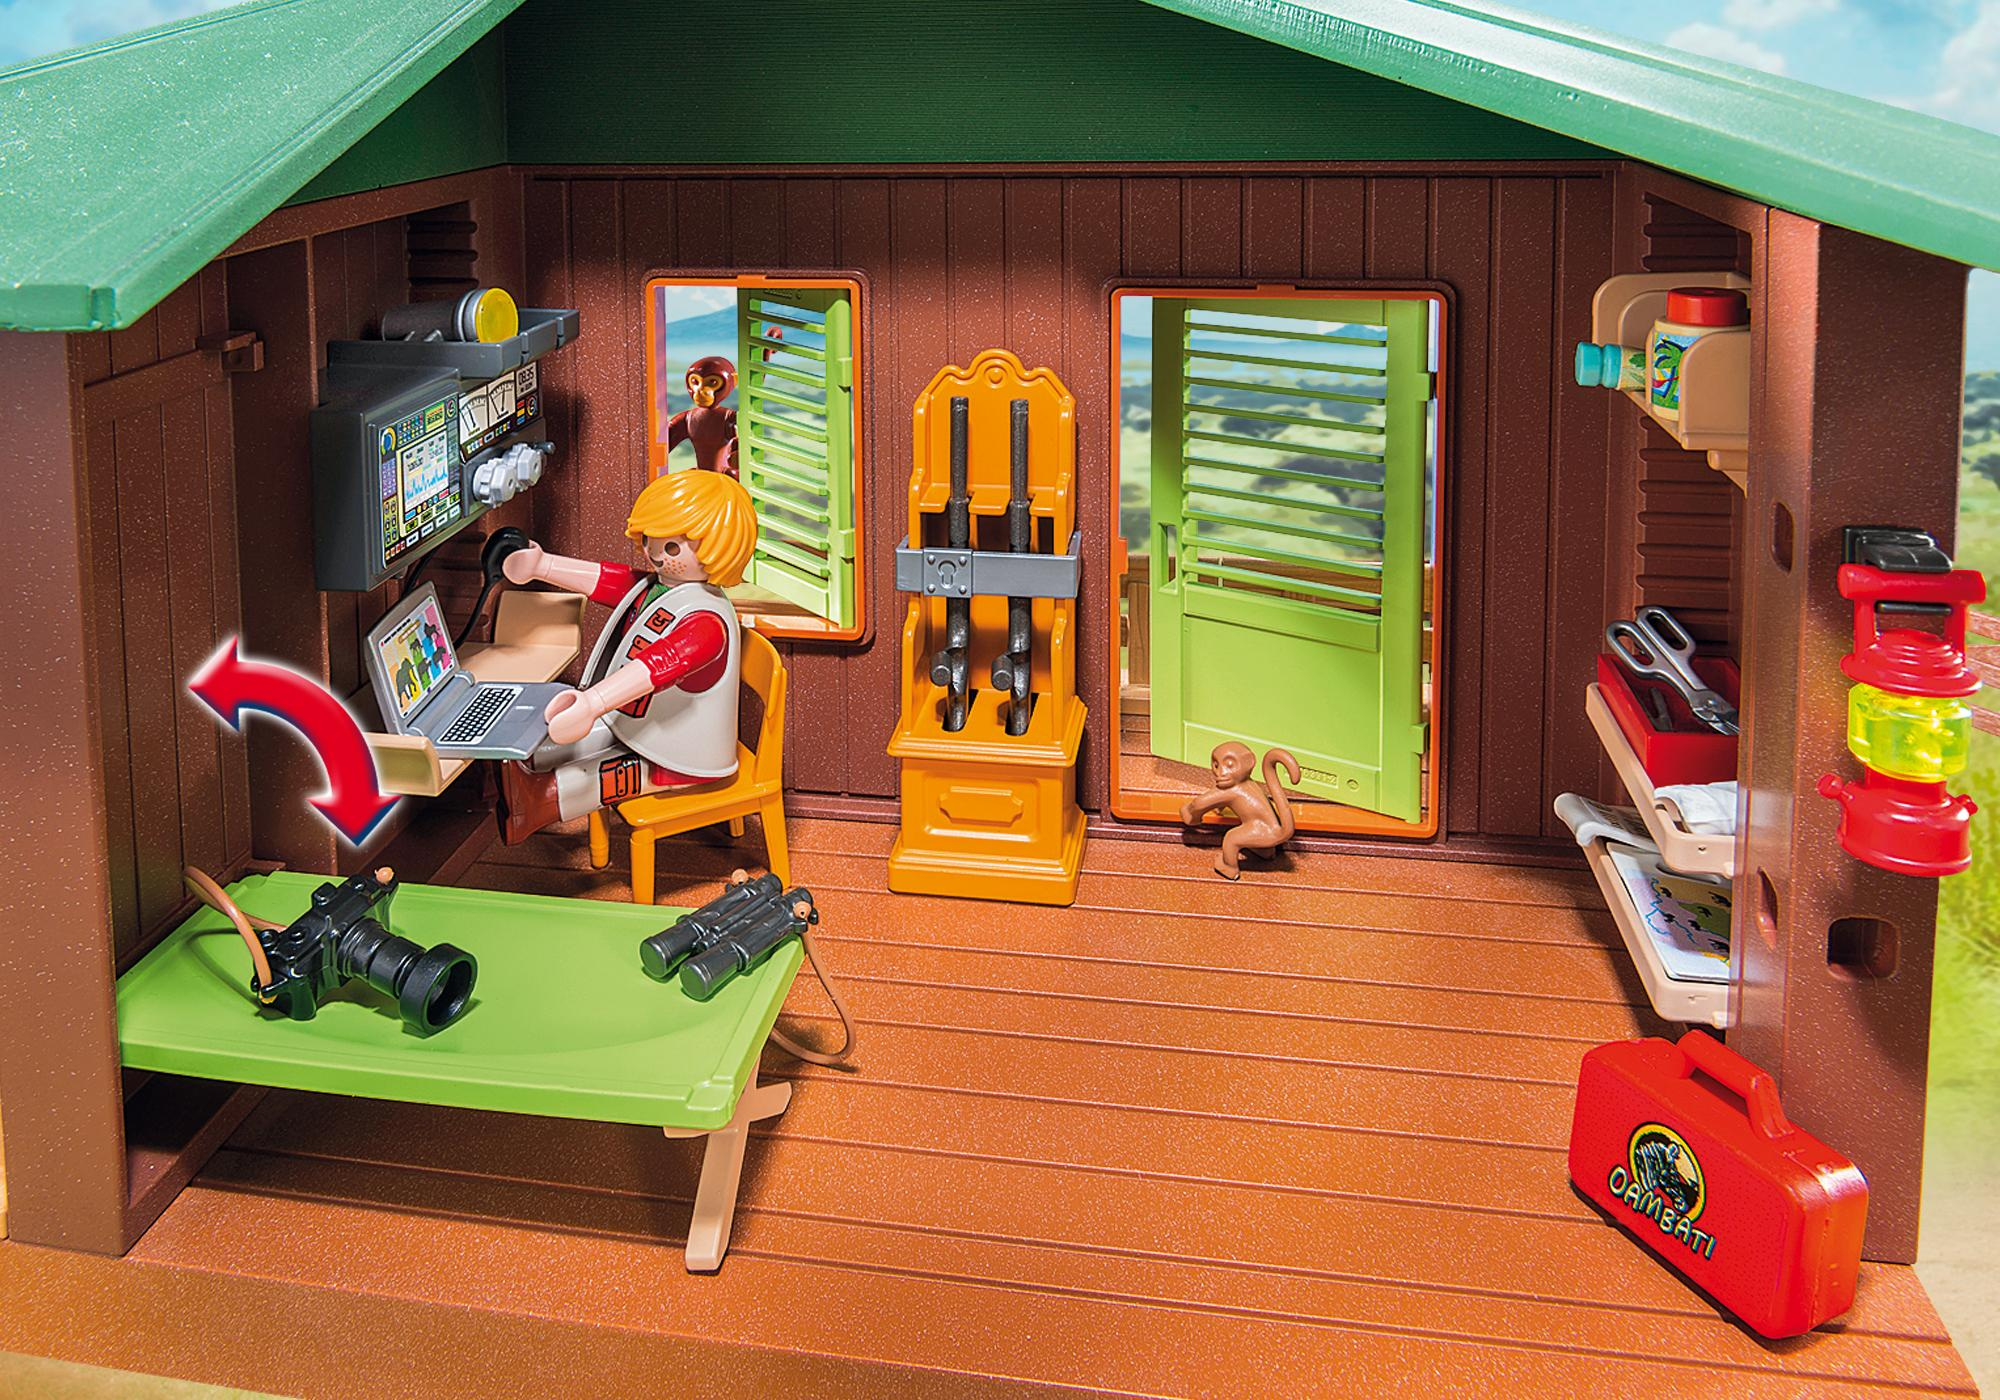 http://media.playmobil.com/i/playmobil/6936_product_extra2/Ranger Station with Animal Area